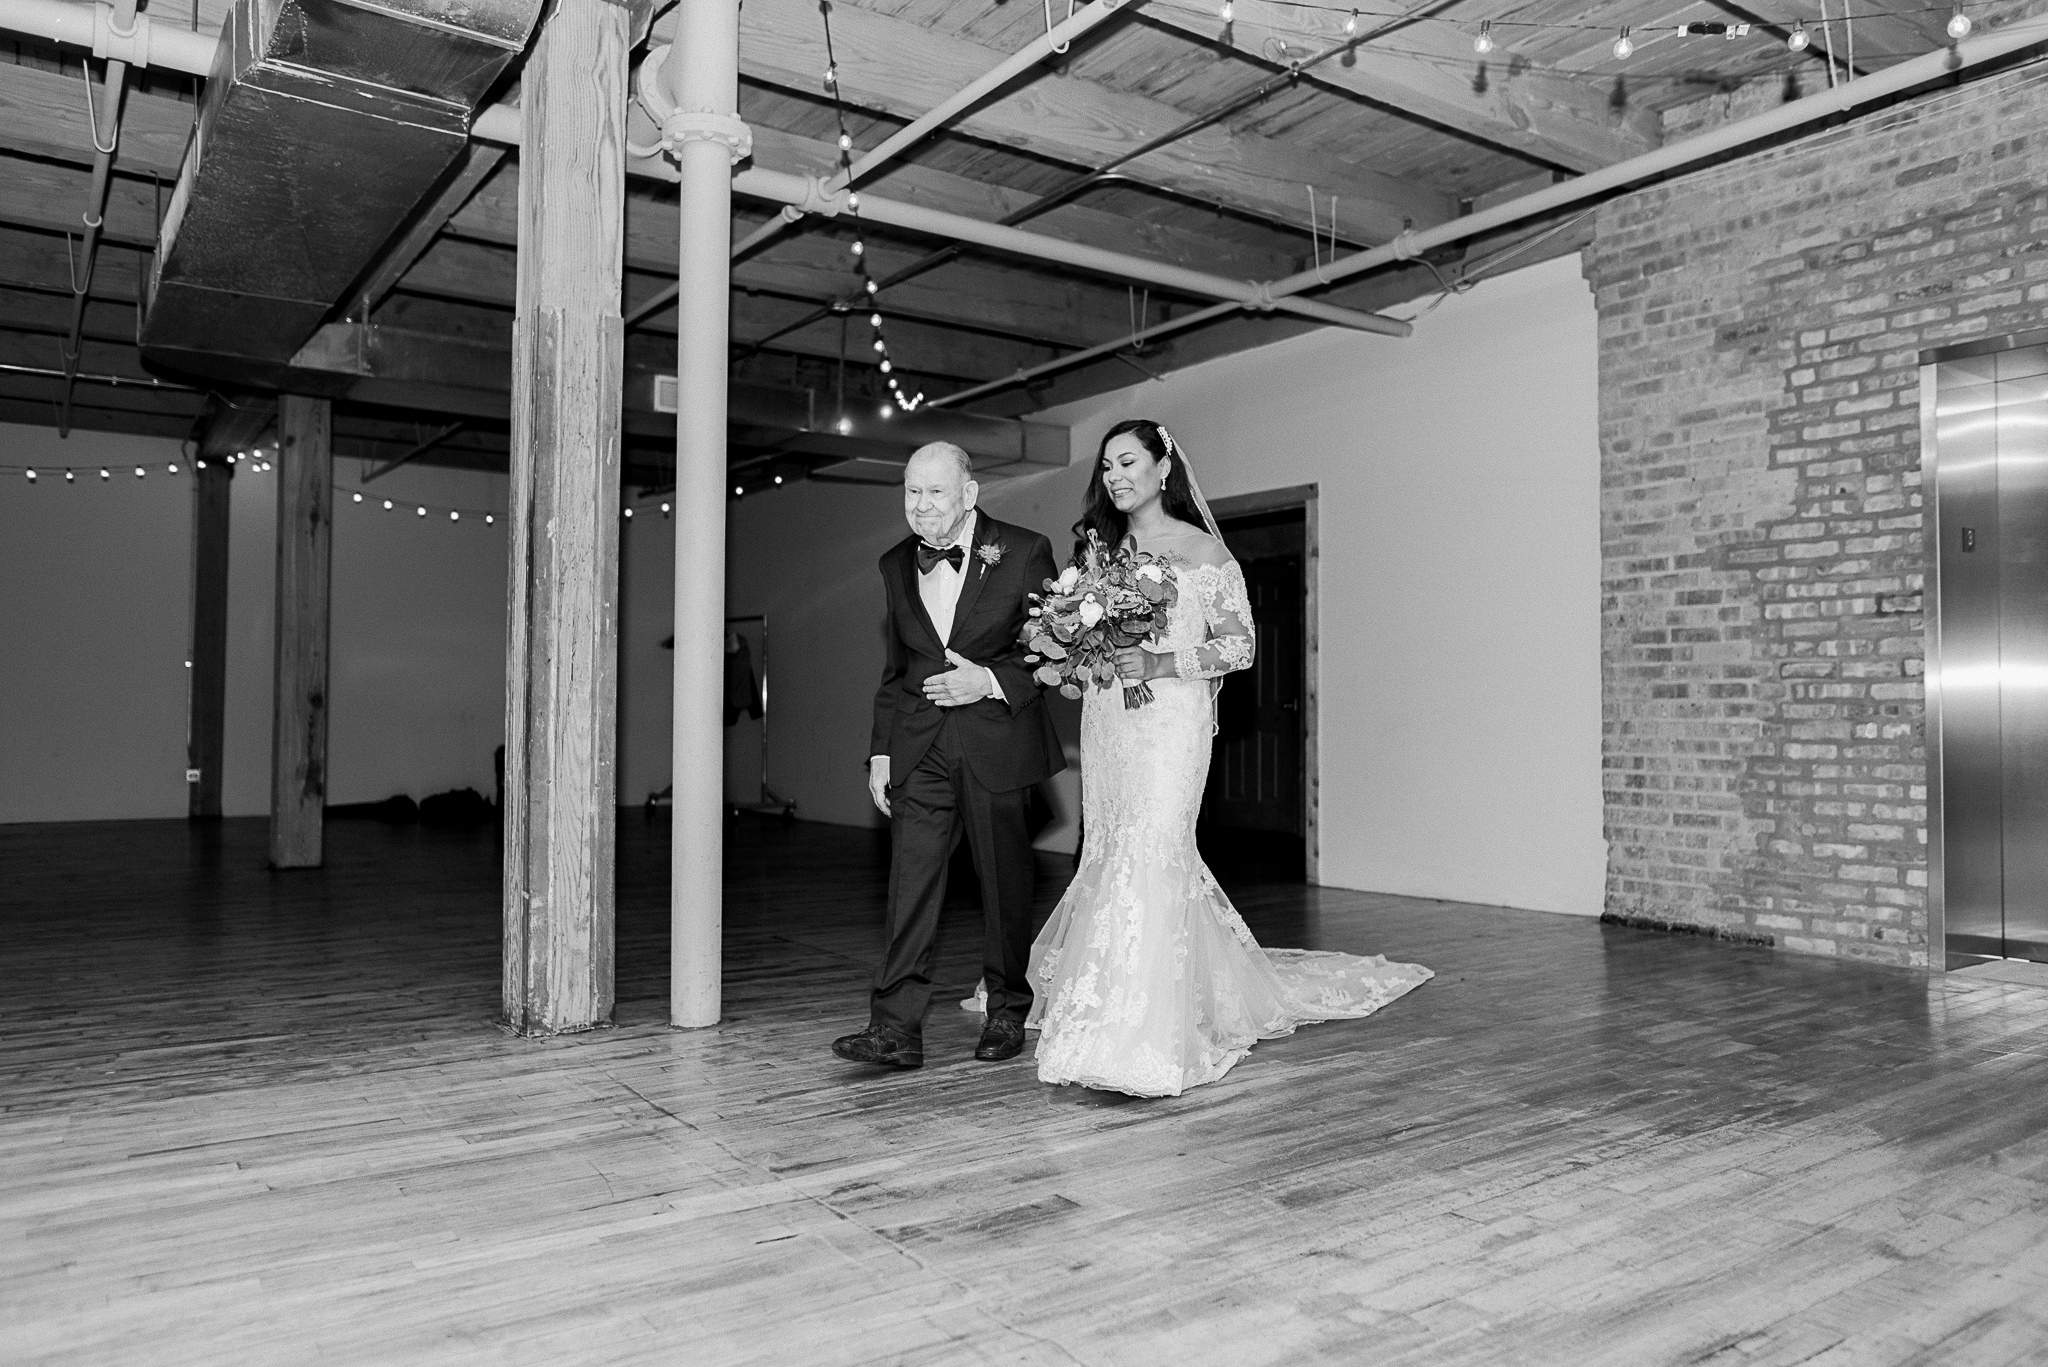 chicagoweddingphotographer_lacunalofts-1.jpg